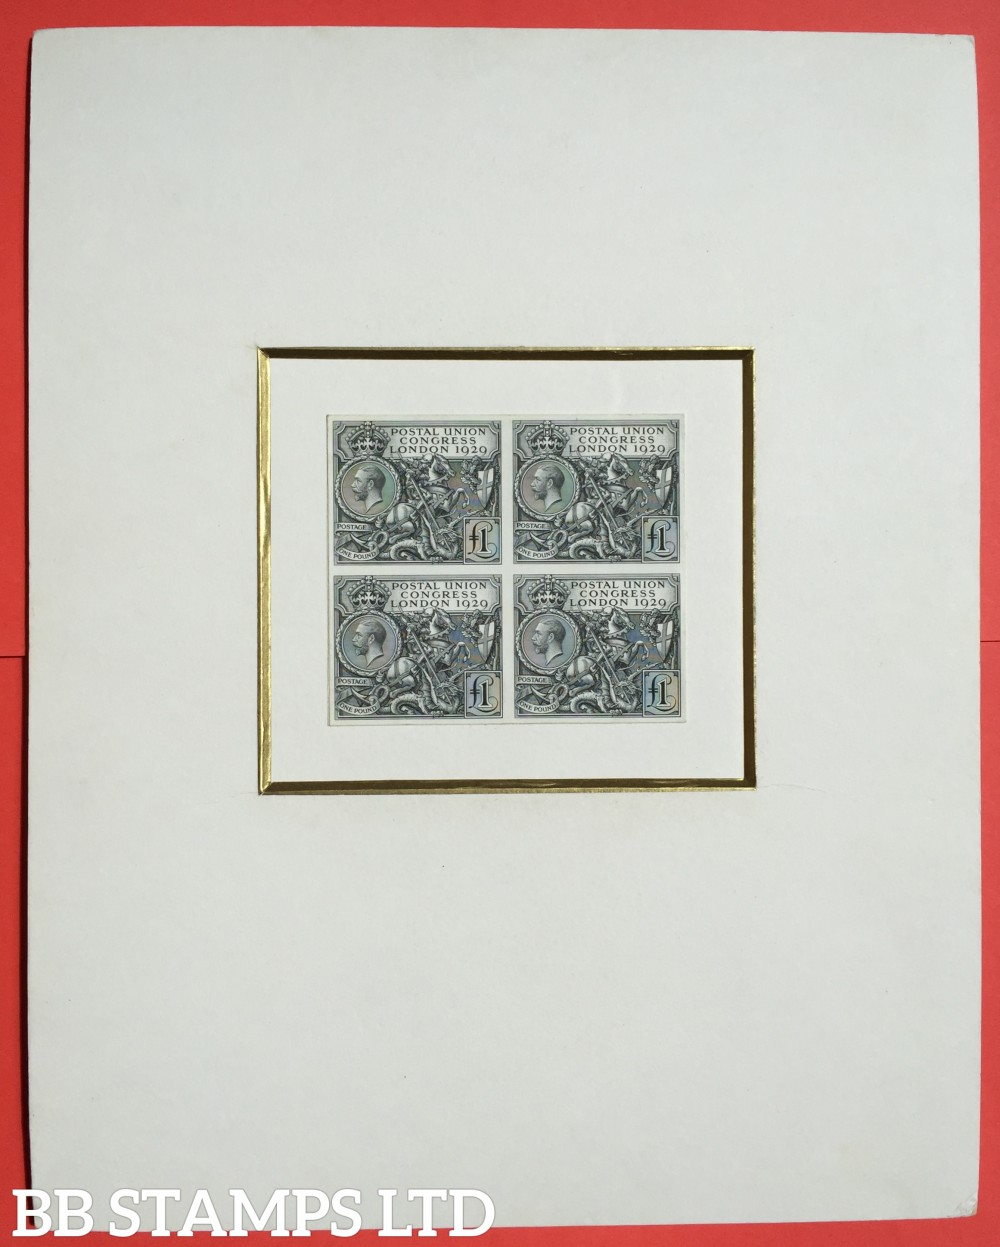 SG. 434 - 438. NCom5 - Ncom 9. ½d - £1.00. 1929 Postal union Congress. PLATE PROOFS. A superb complete set of specially prepared Imperf Miniature sheets on thin white glazed paper. One of only 3 sets in private hands.